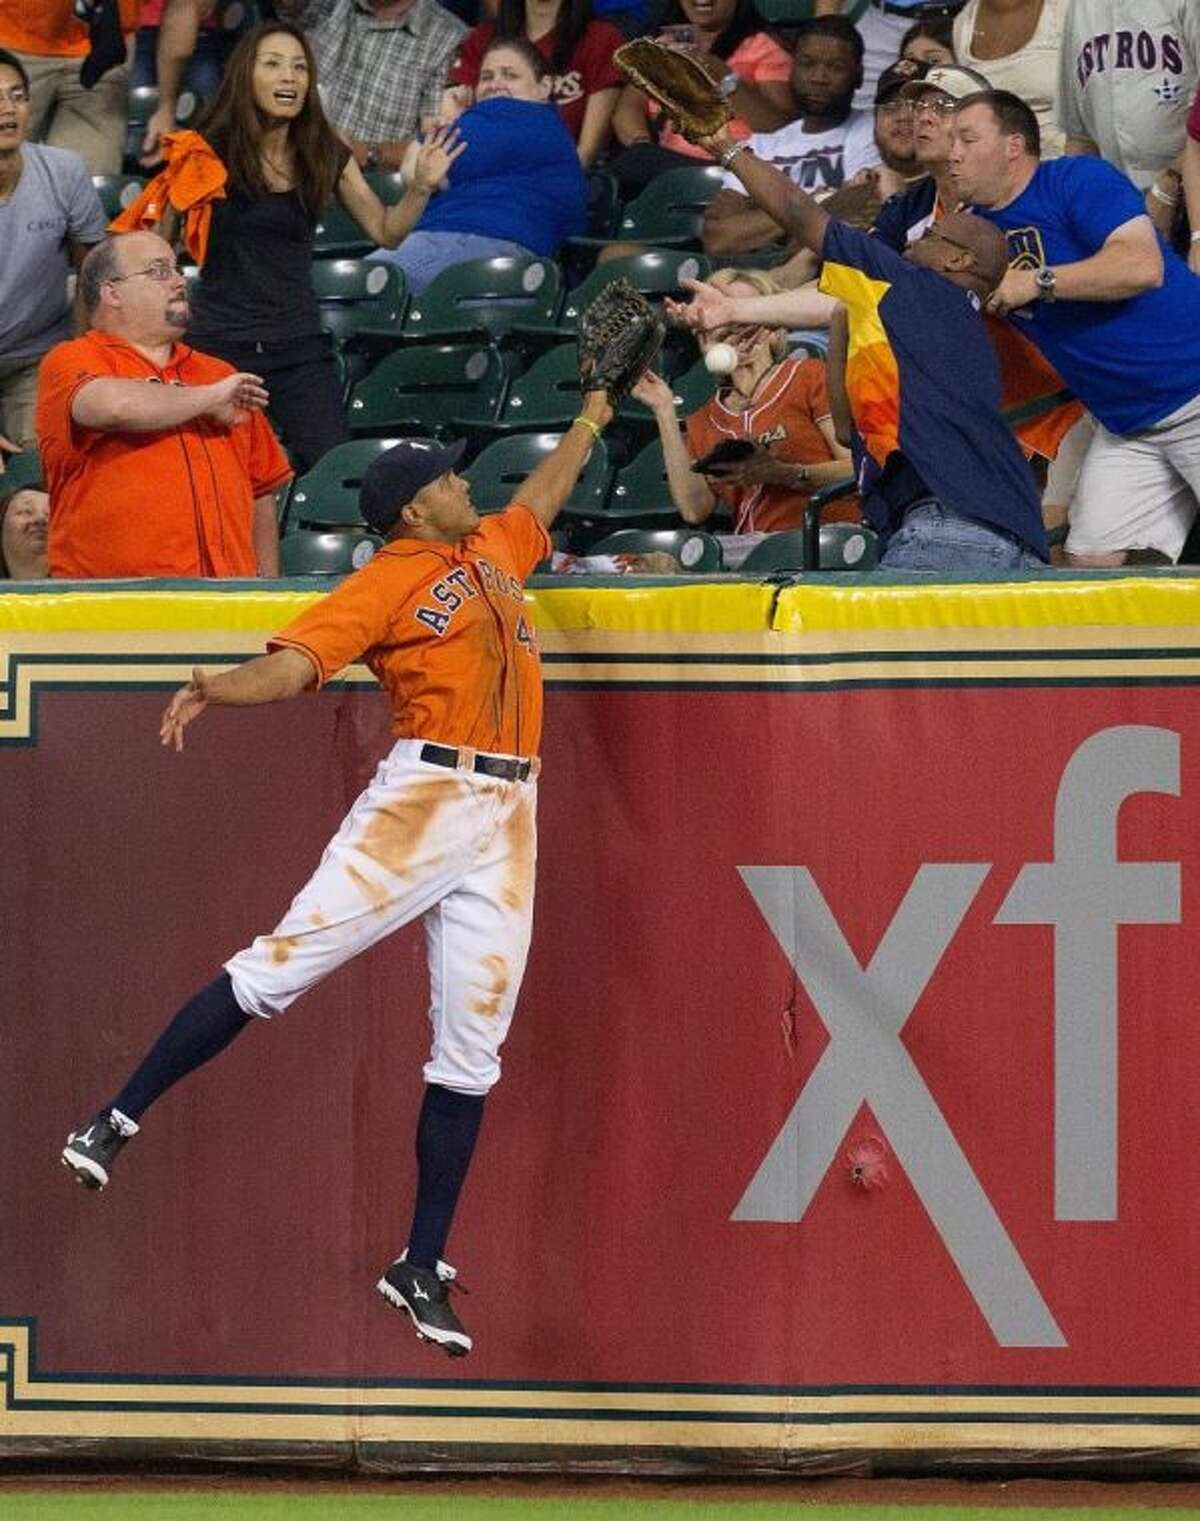 The Houston Astros traded outfielder Justin Maxwell to the Kansas City Royals on Wednesday in exchange for minor league pitcher Kyle Smith.